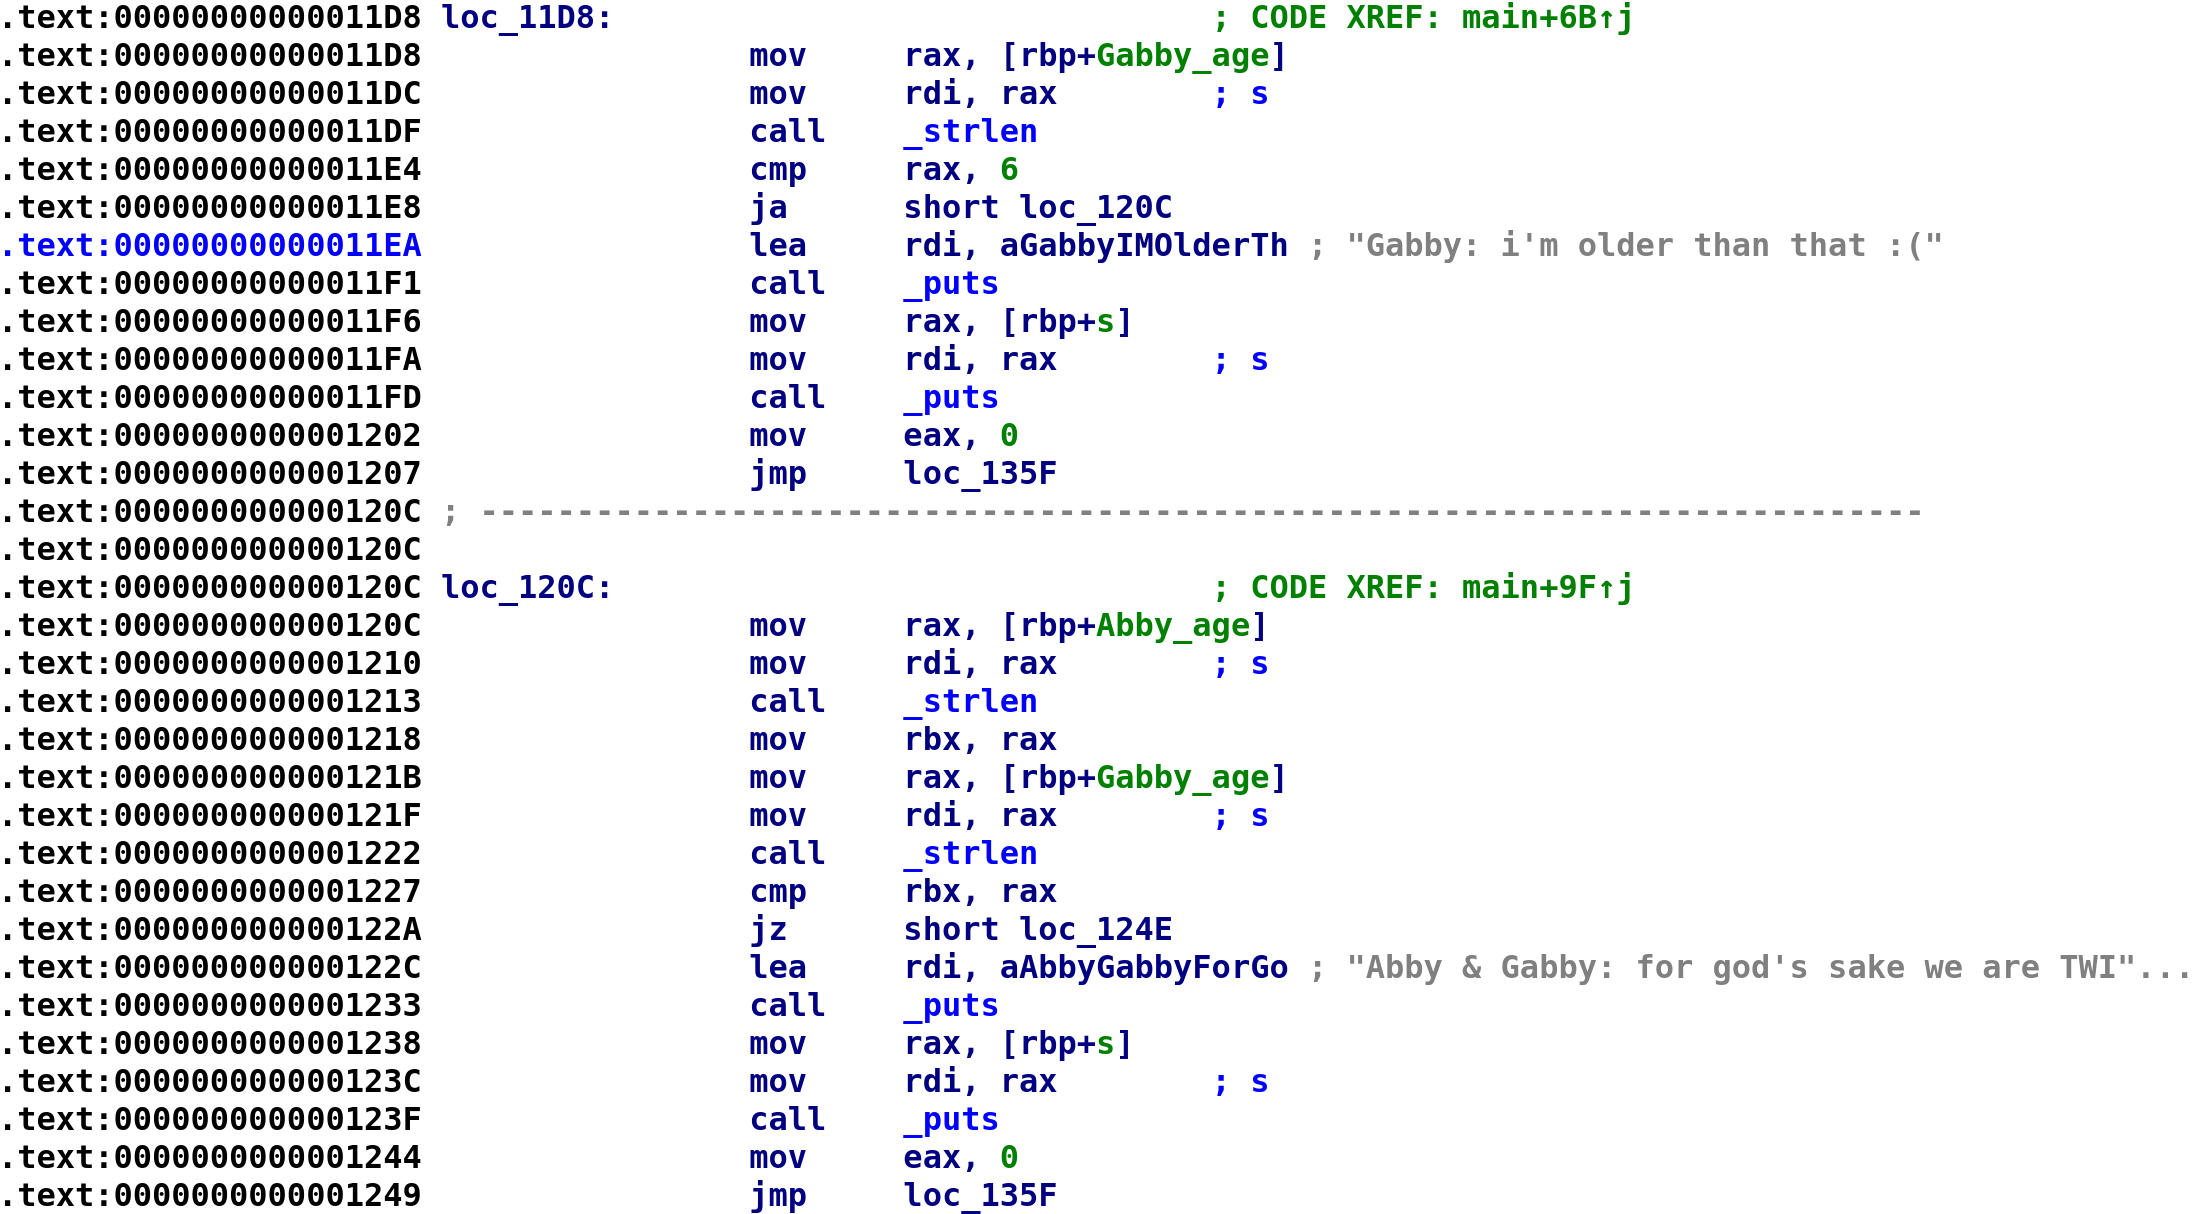 Half-twins binary with updated variable names